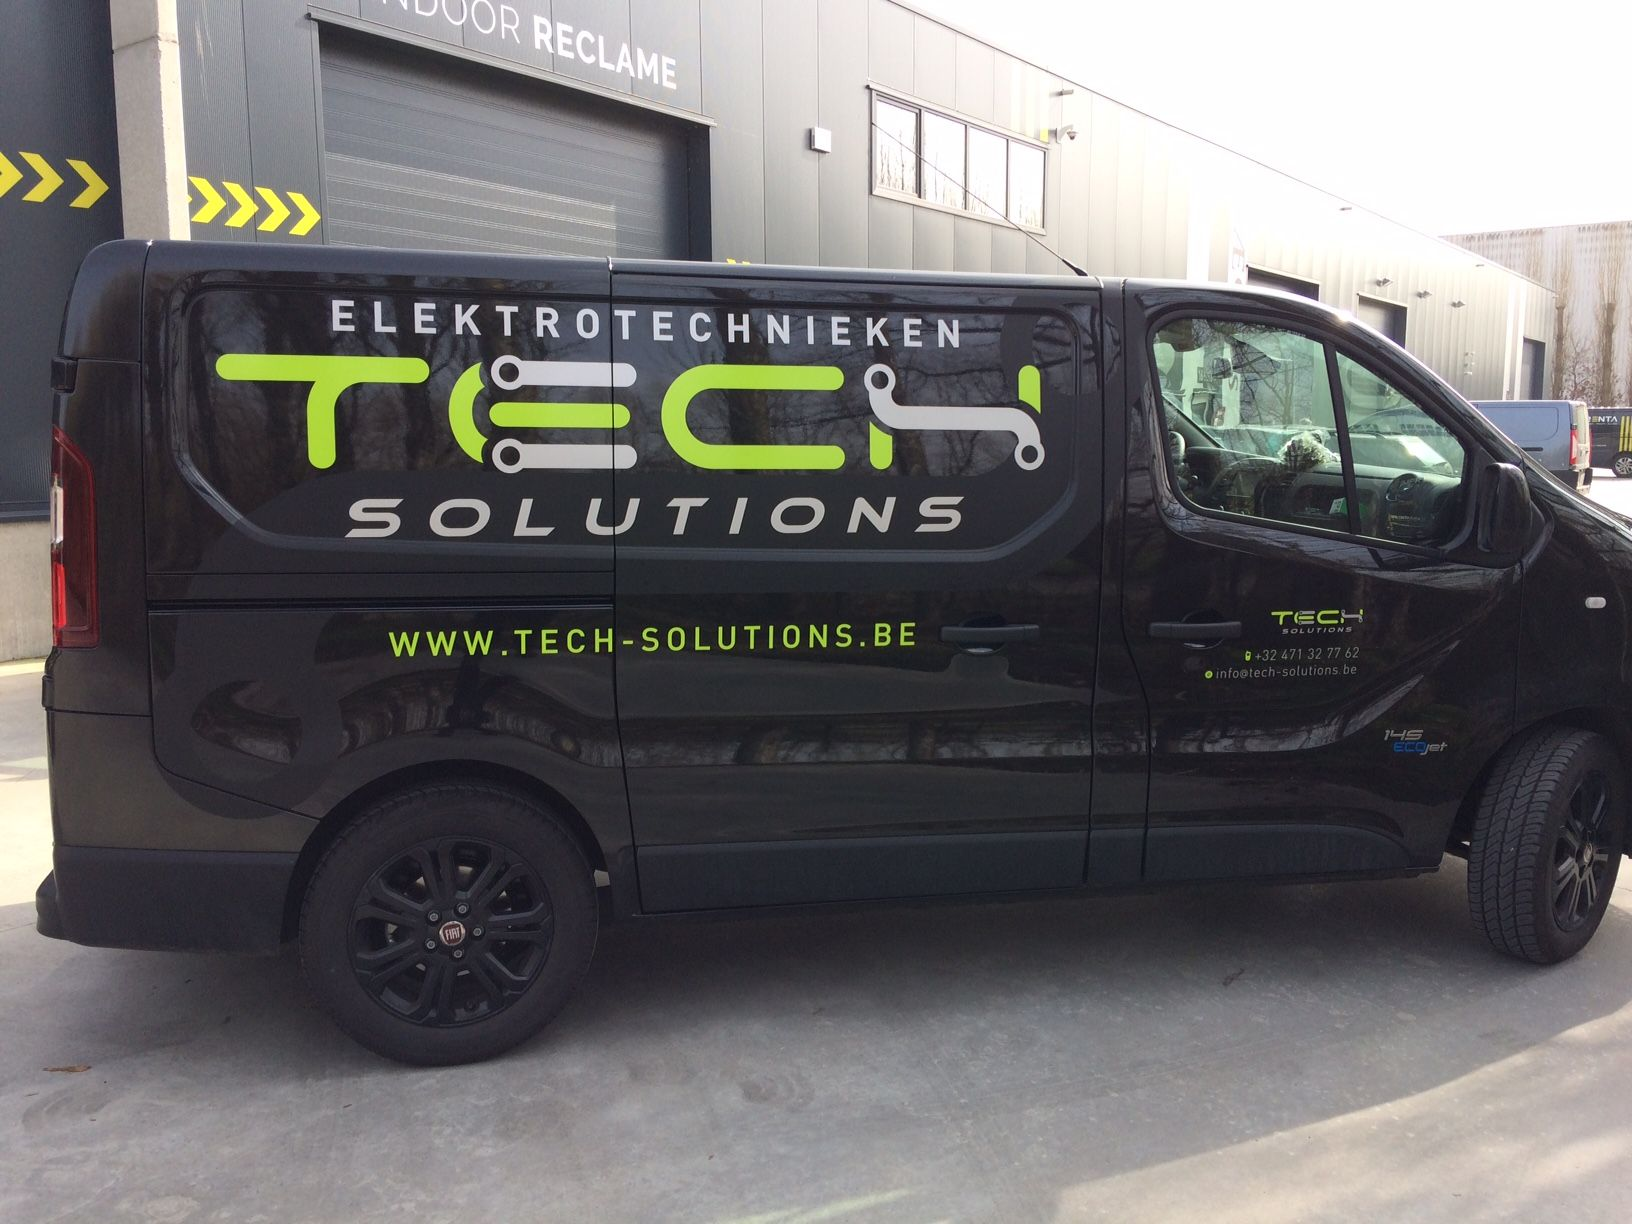 Commercial Vehicle Signage Van Signwriting Van Signage For Tech Solutions Lime Green Matte Black Aluminium Metallic Commercial Auto Tech [ 1224 x 1632 Pixel ]